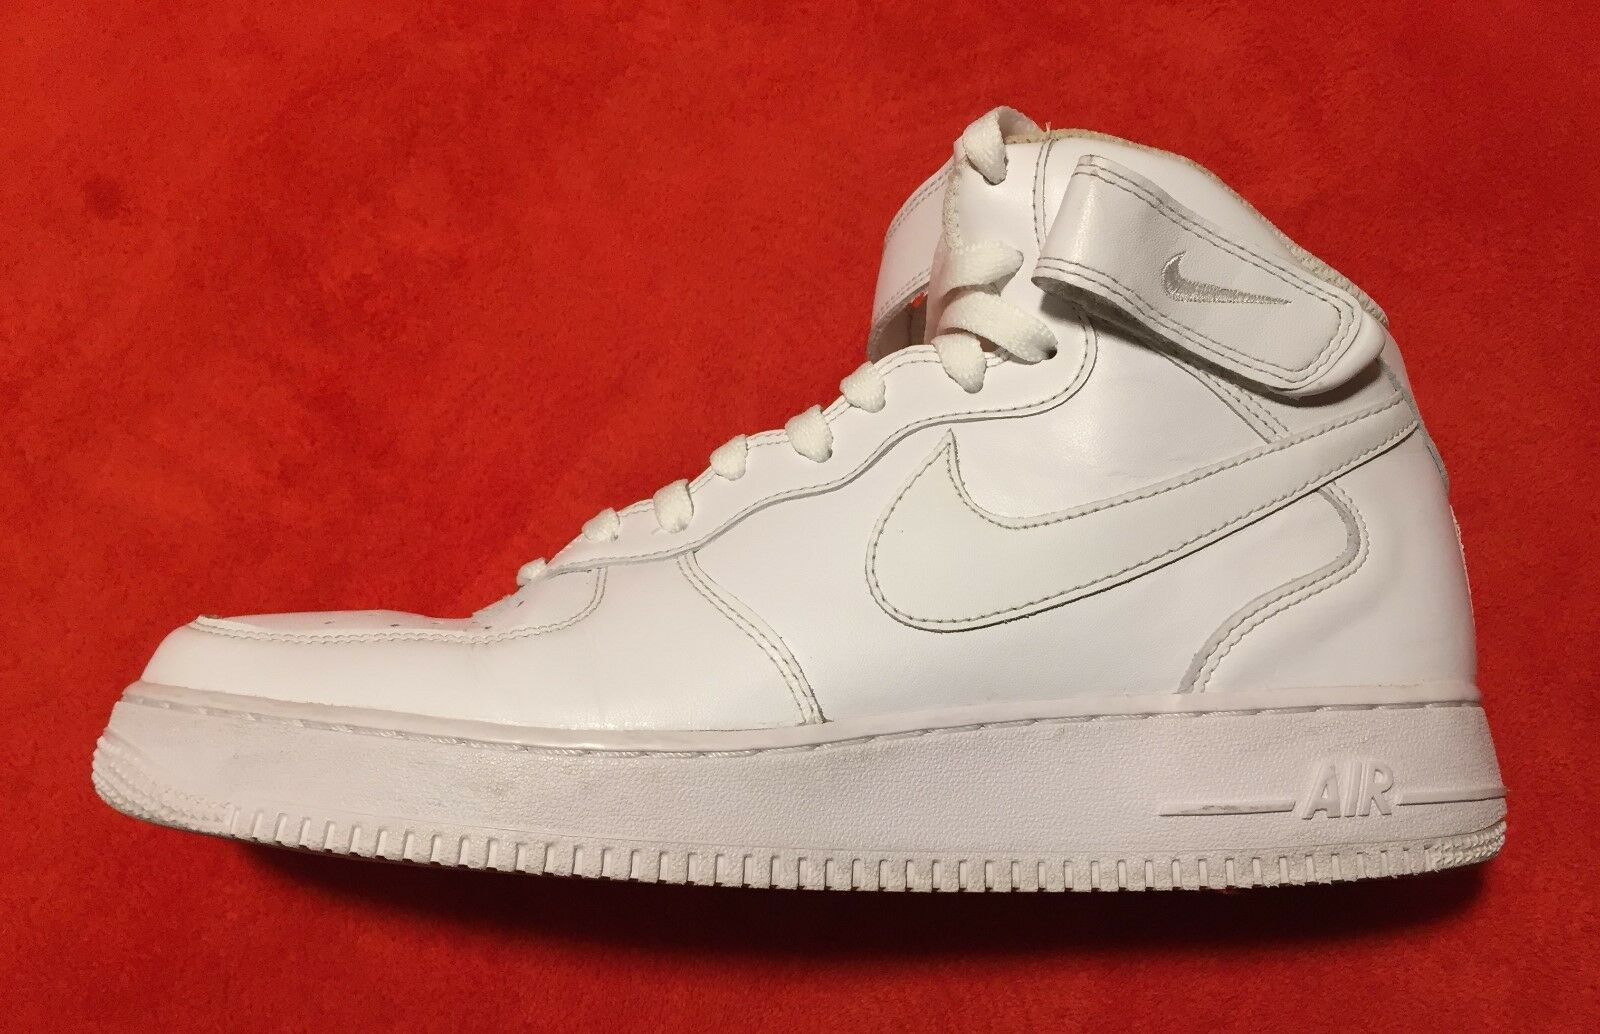 Nike Air Force 1 AF1 White High Leather Men's Sneaker shoes Sz 11.5